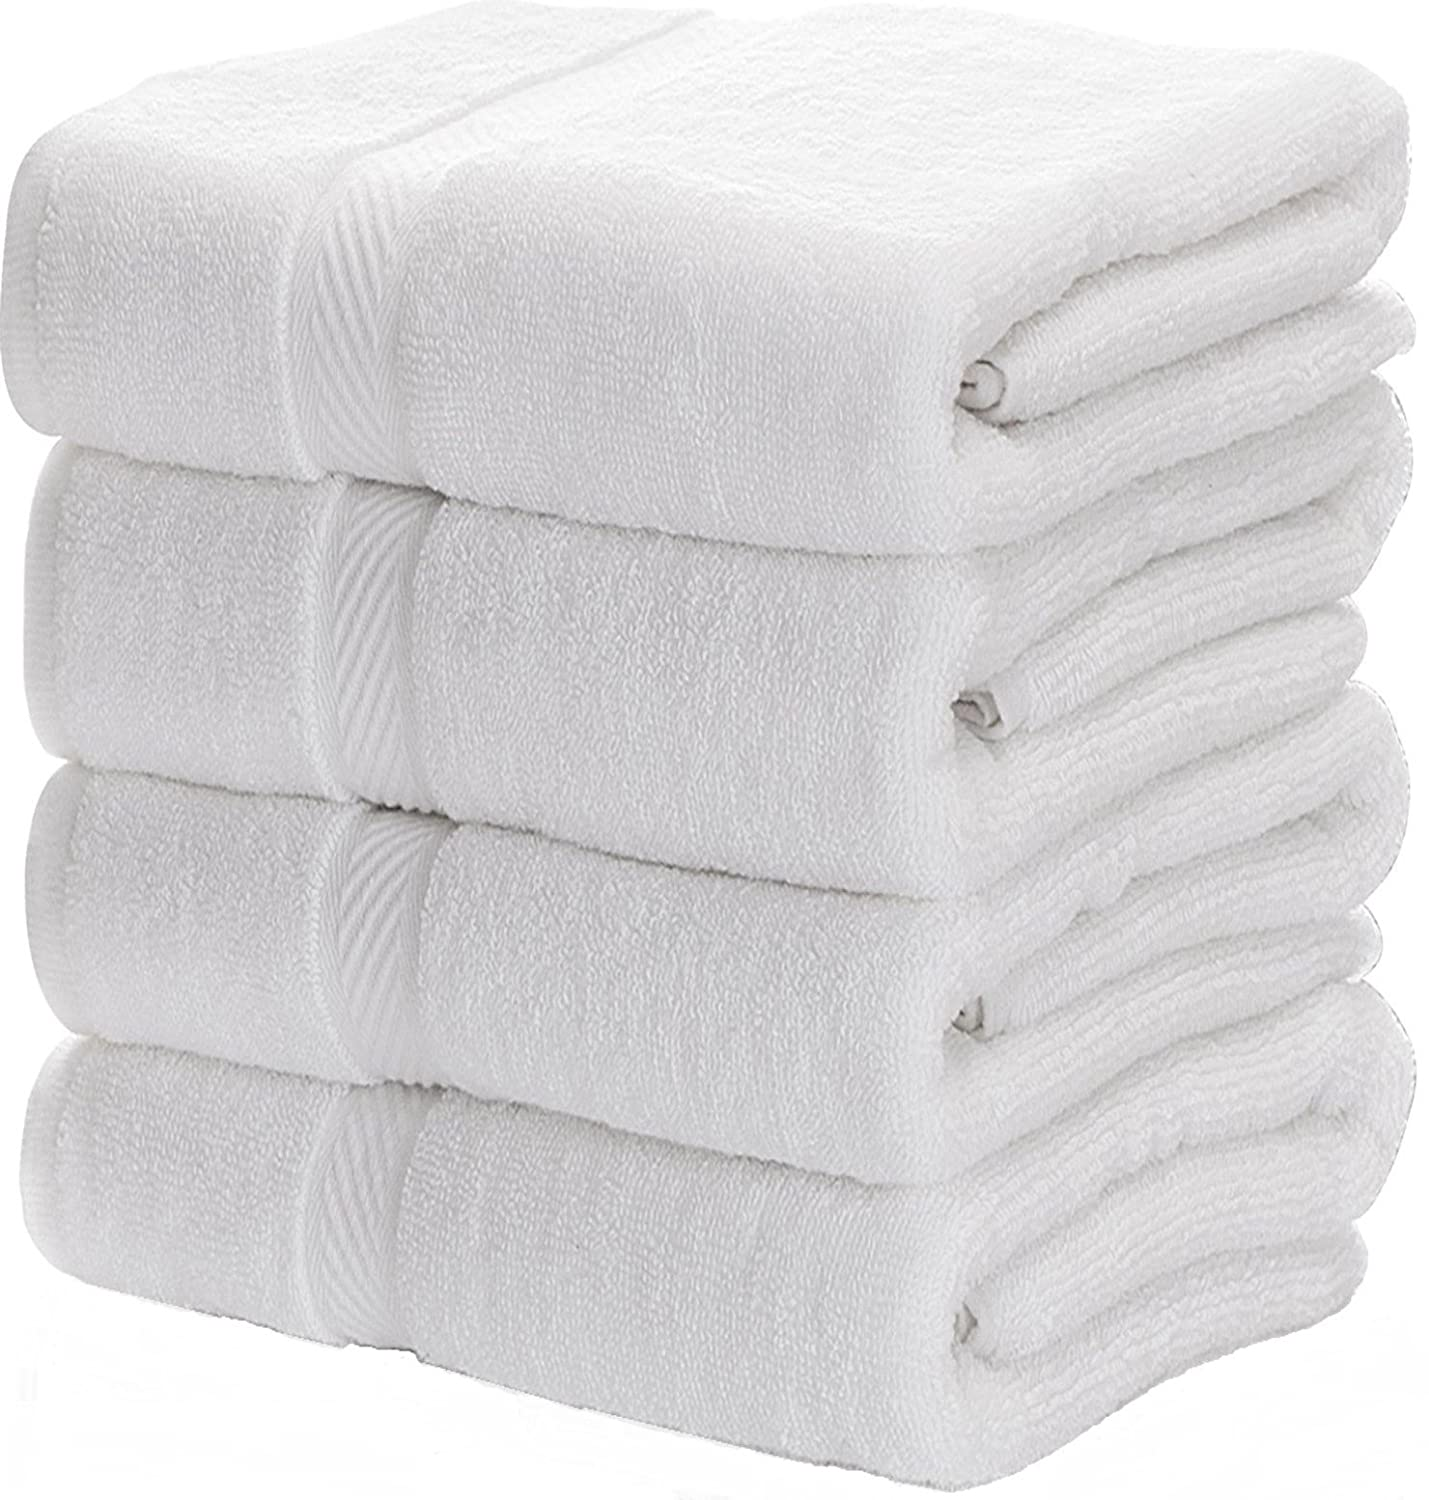 Luxury White Bath Towels for Bathroom-Hotel-Spa-Kitchen-Set - Circlet Egyptian Cotton - Highly Absorbent Hotel Quality Towels - 27x54 Inch - Bulk Set of 4 Opabt27-4